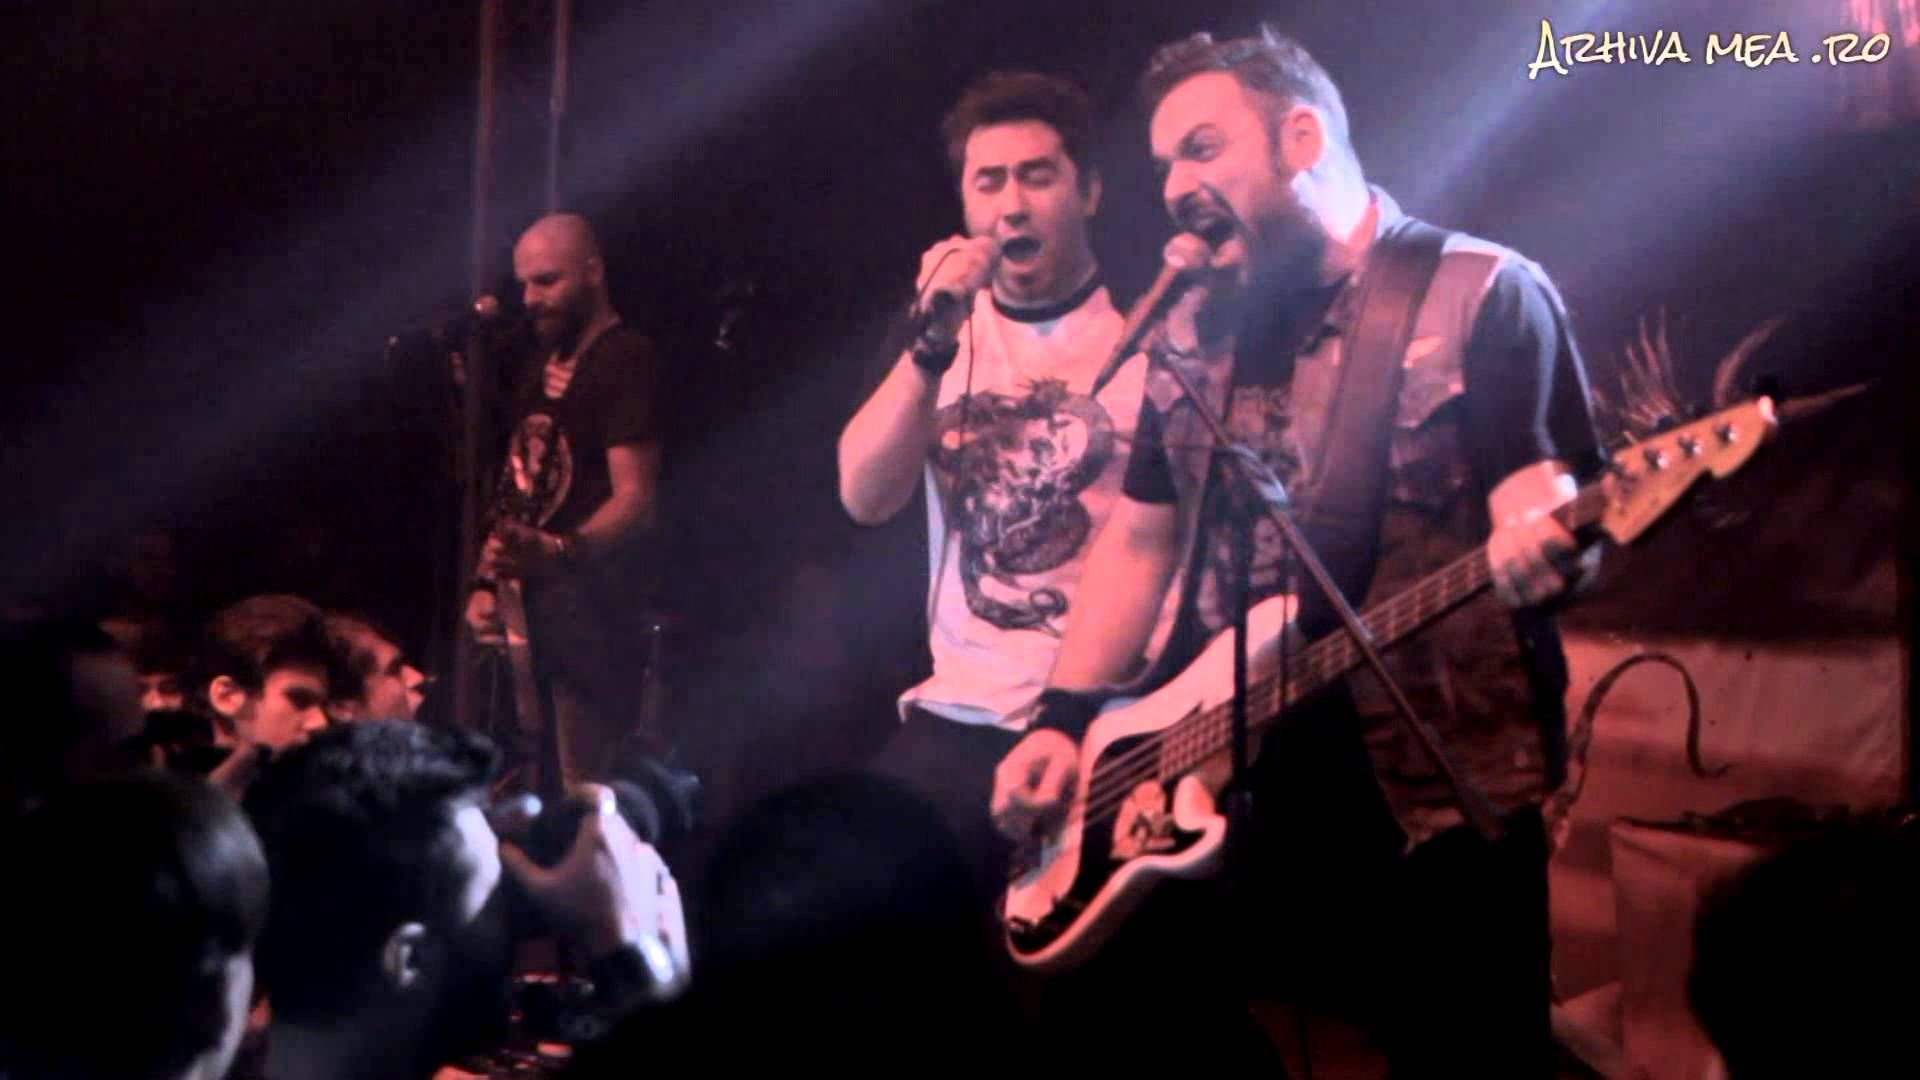 Goodbye to Gravity - The Day We Die (Live in Club Colectiv, Bucharest, R...       just before tragedy.R.I.P.